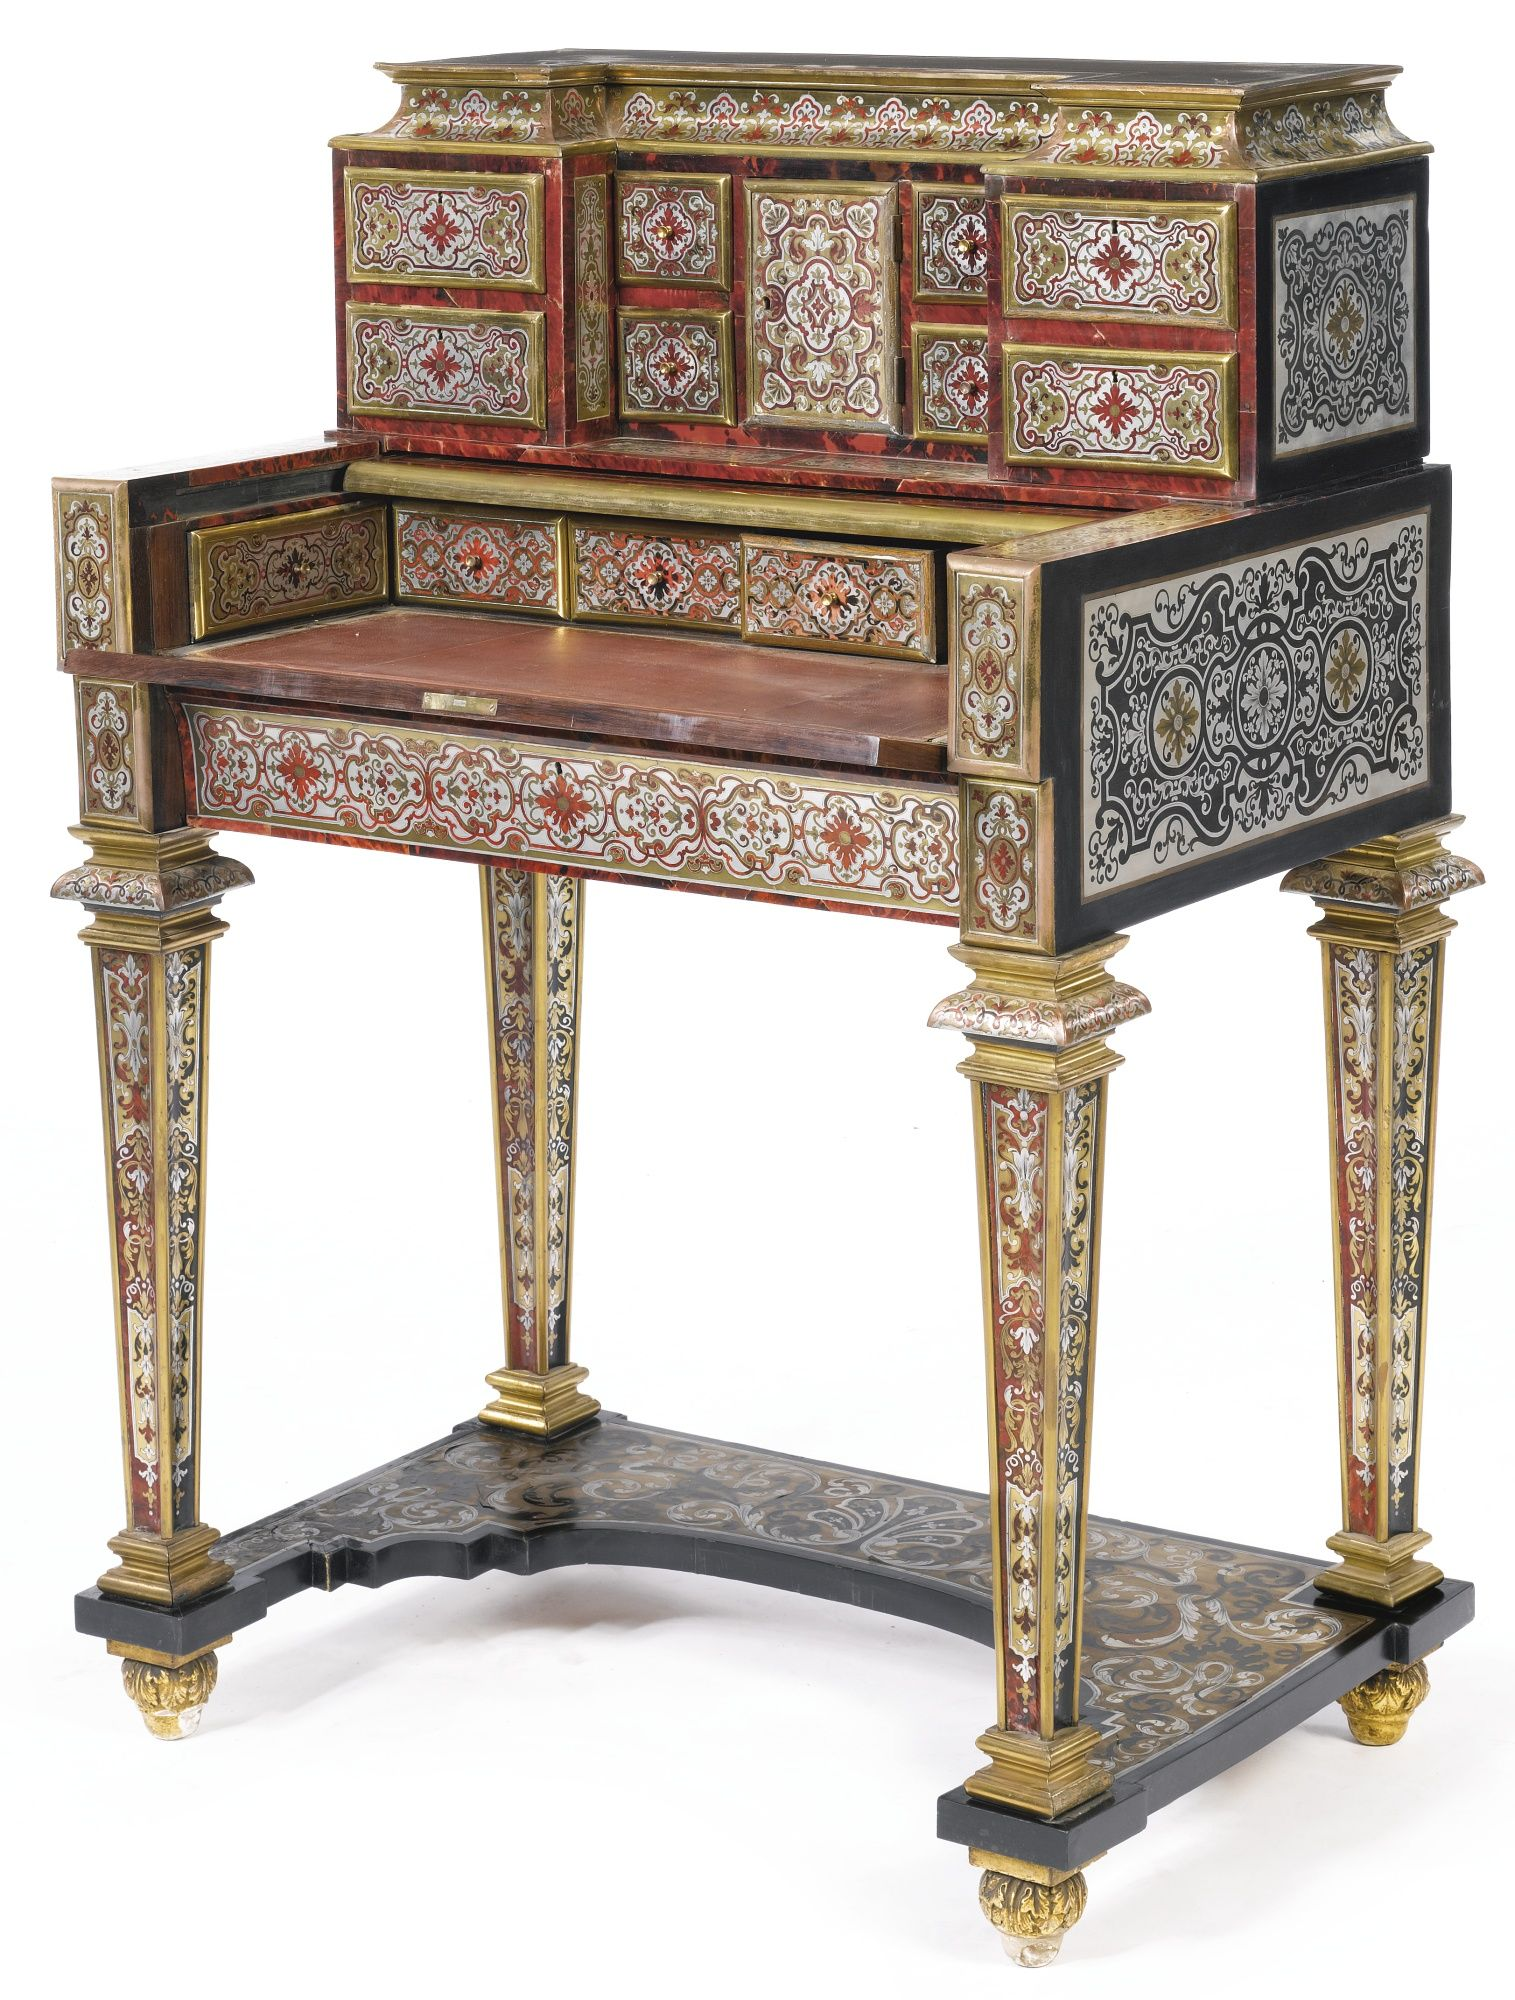 Muebles Estilo Barroco A Flemish Baroque Tortoiseshell Brass Copper And Pewter